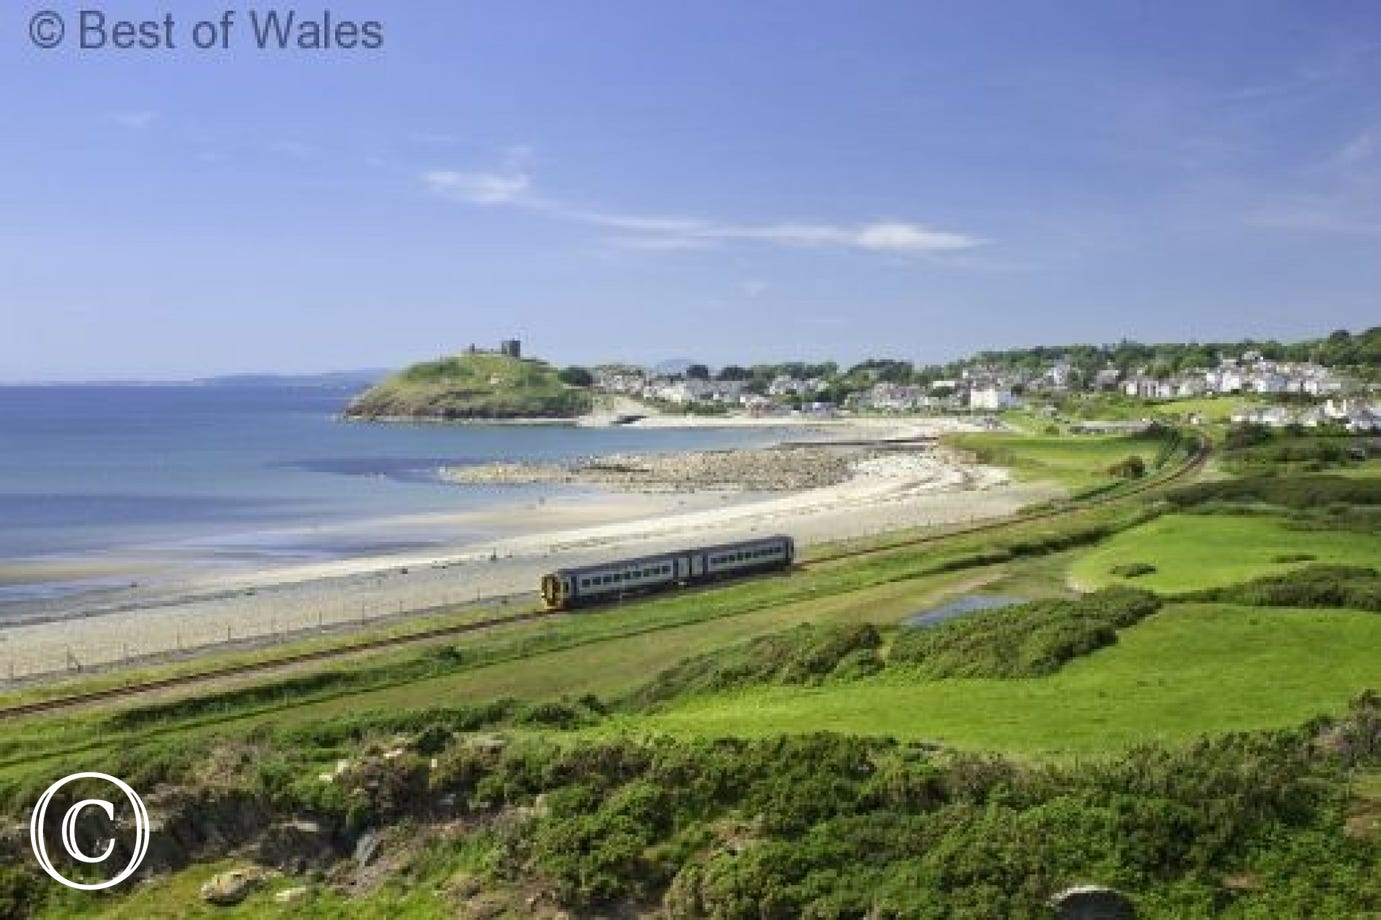 Spend a day travelling along the Cambrian Coast Railway Line